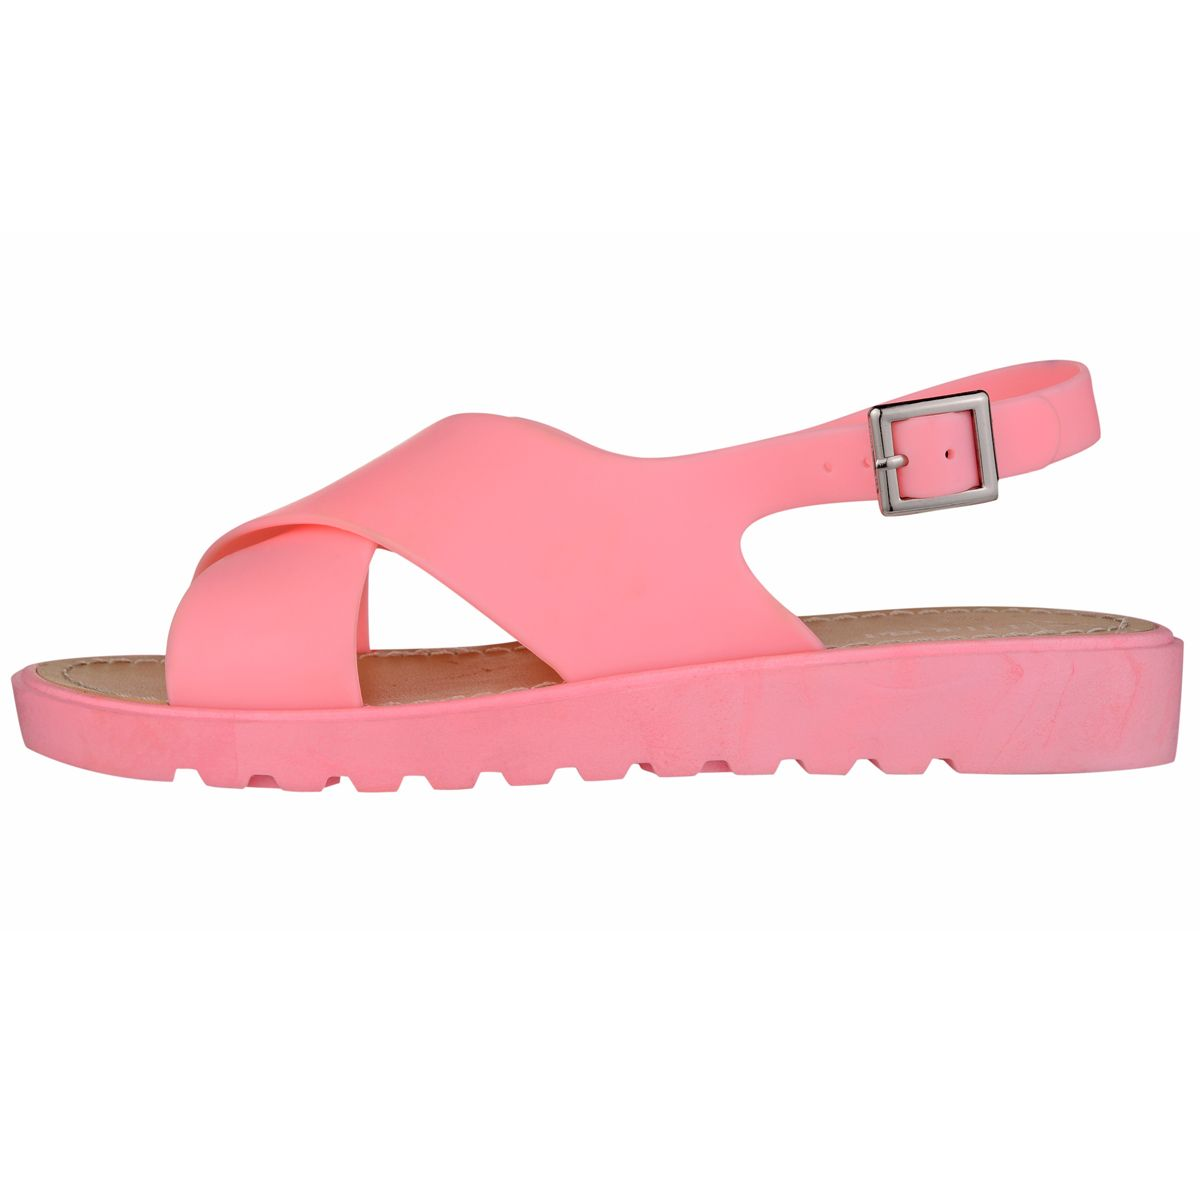 Every Occasion Summer For ShoesFootwearAccessories 15 Sandals 2DH9IE